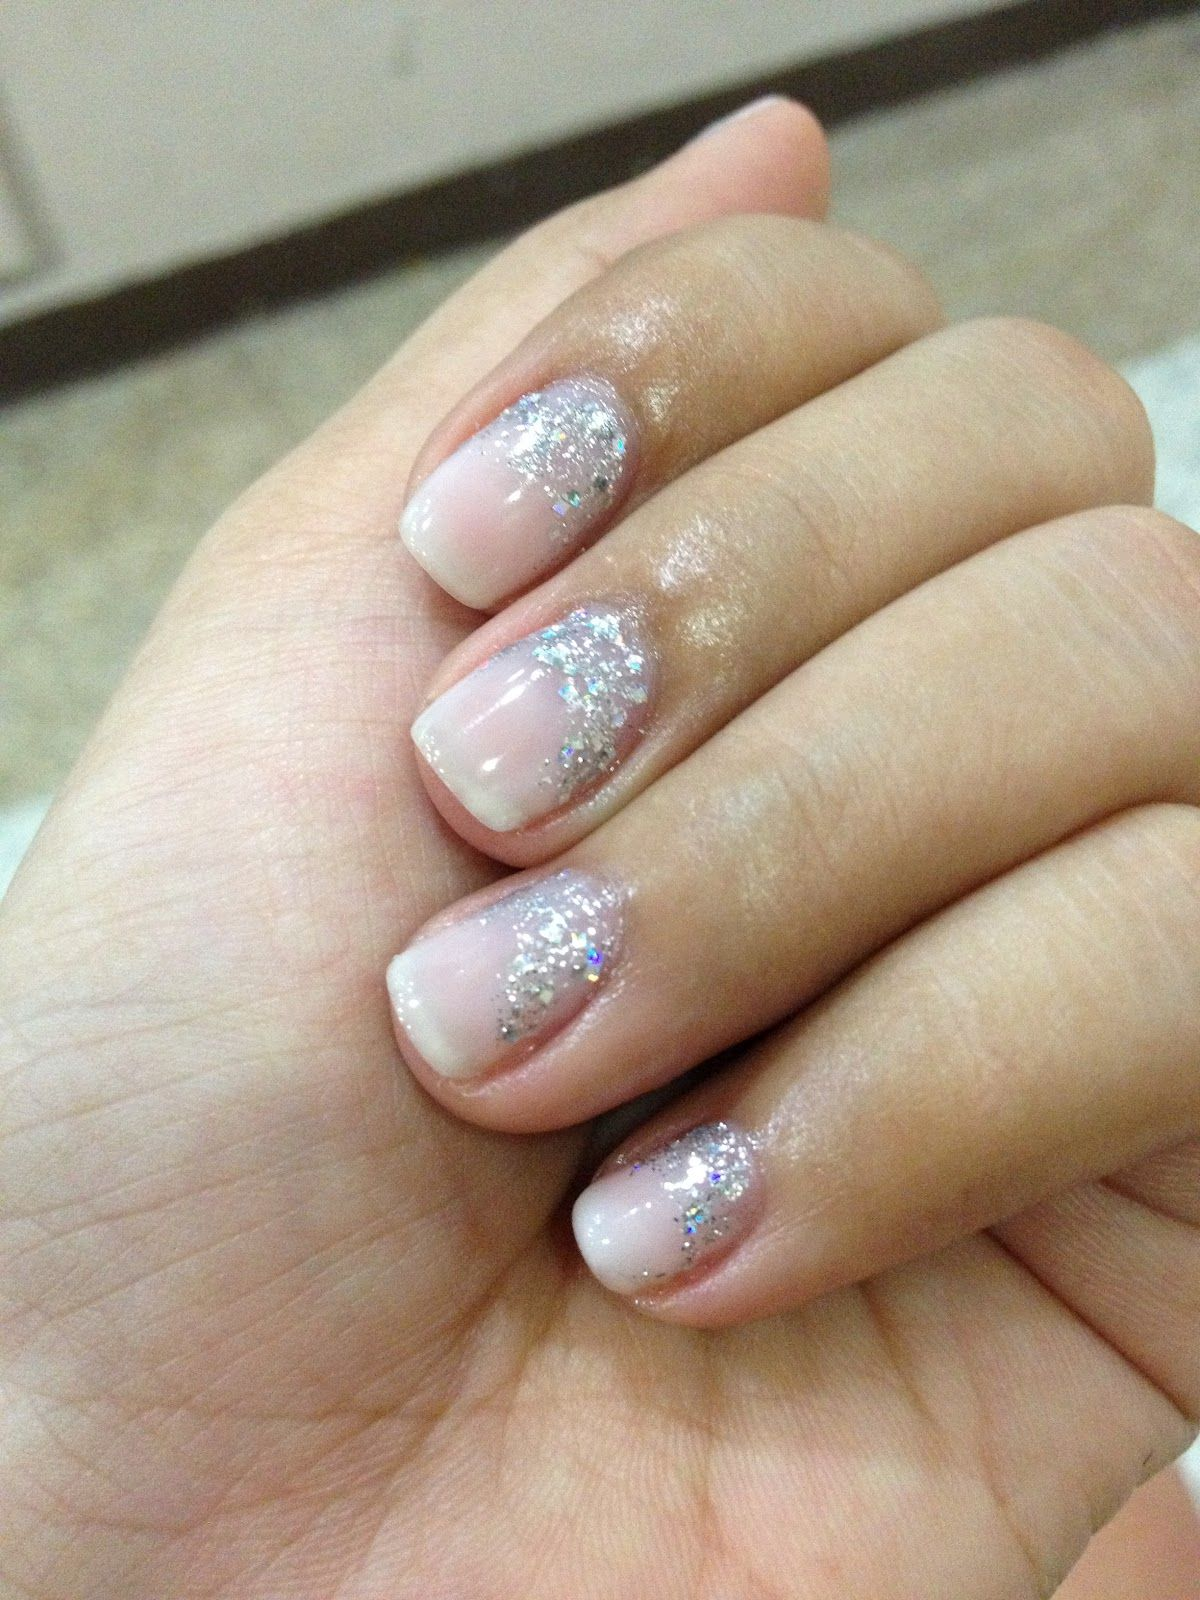 Wedding nails. Could look really pretty against the white gown. - Wedding Nails. Could Look Really Pretty Against The White Gown